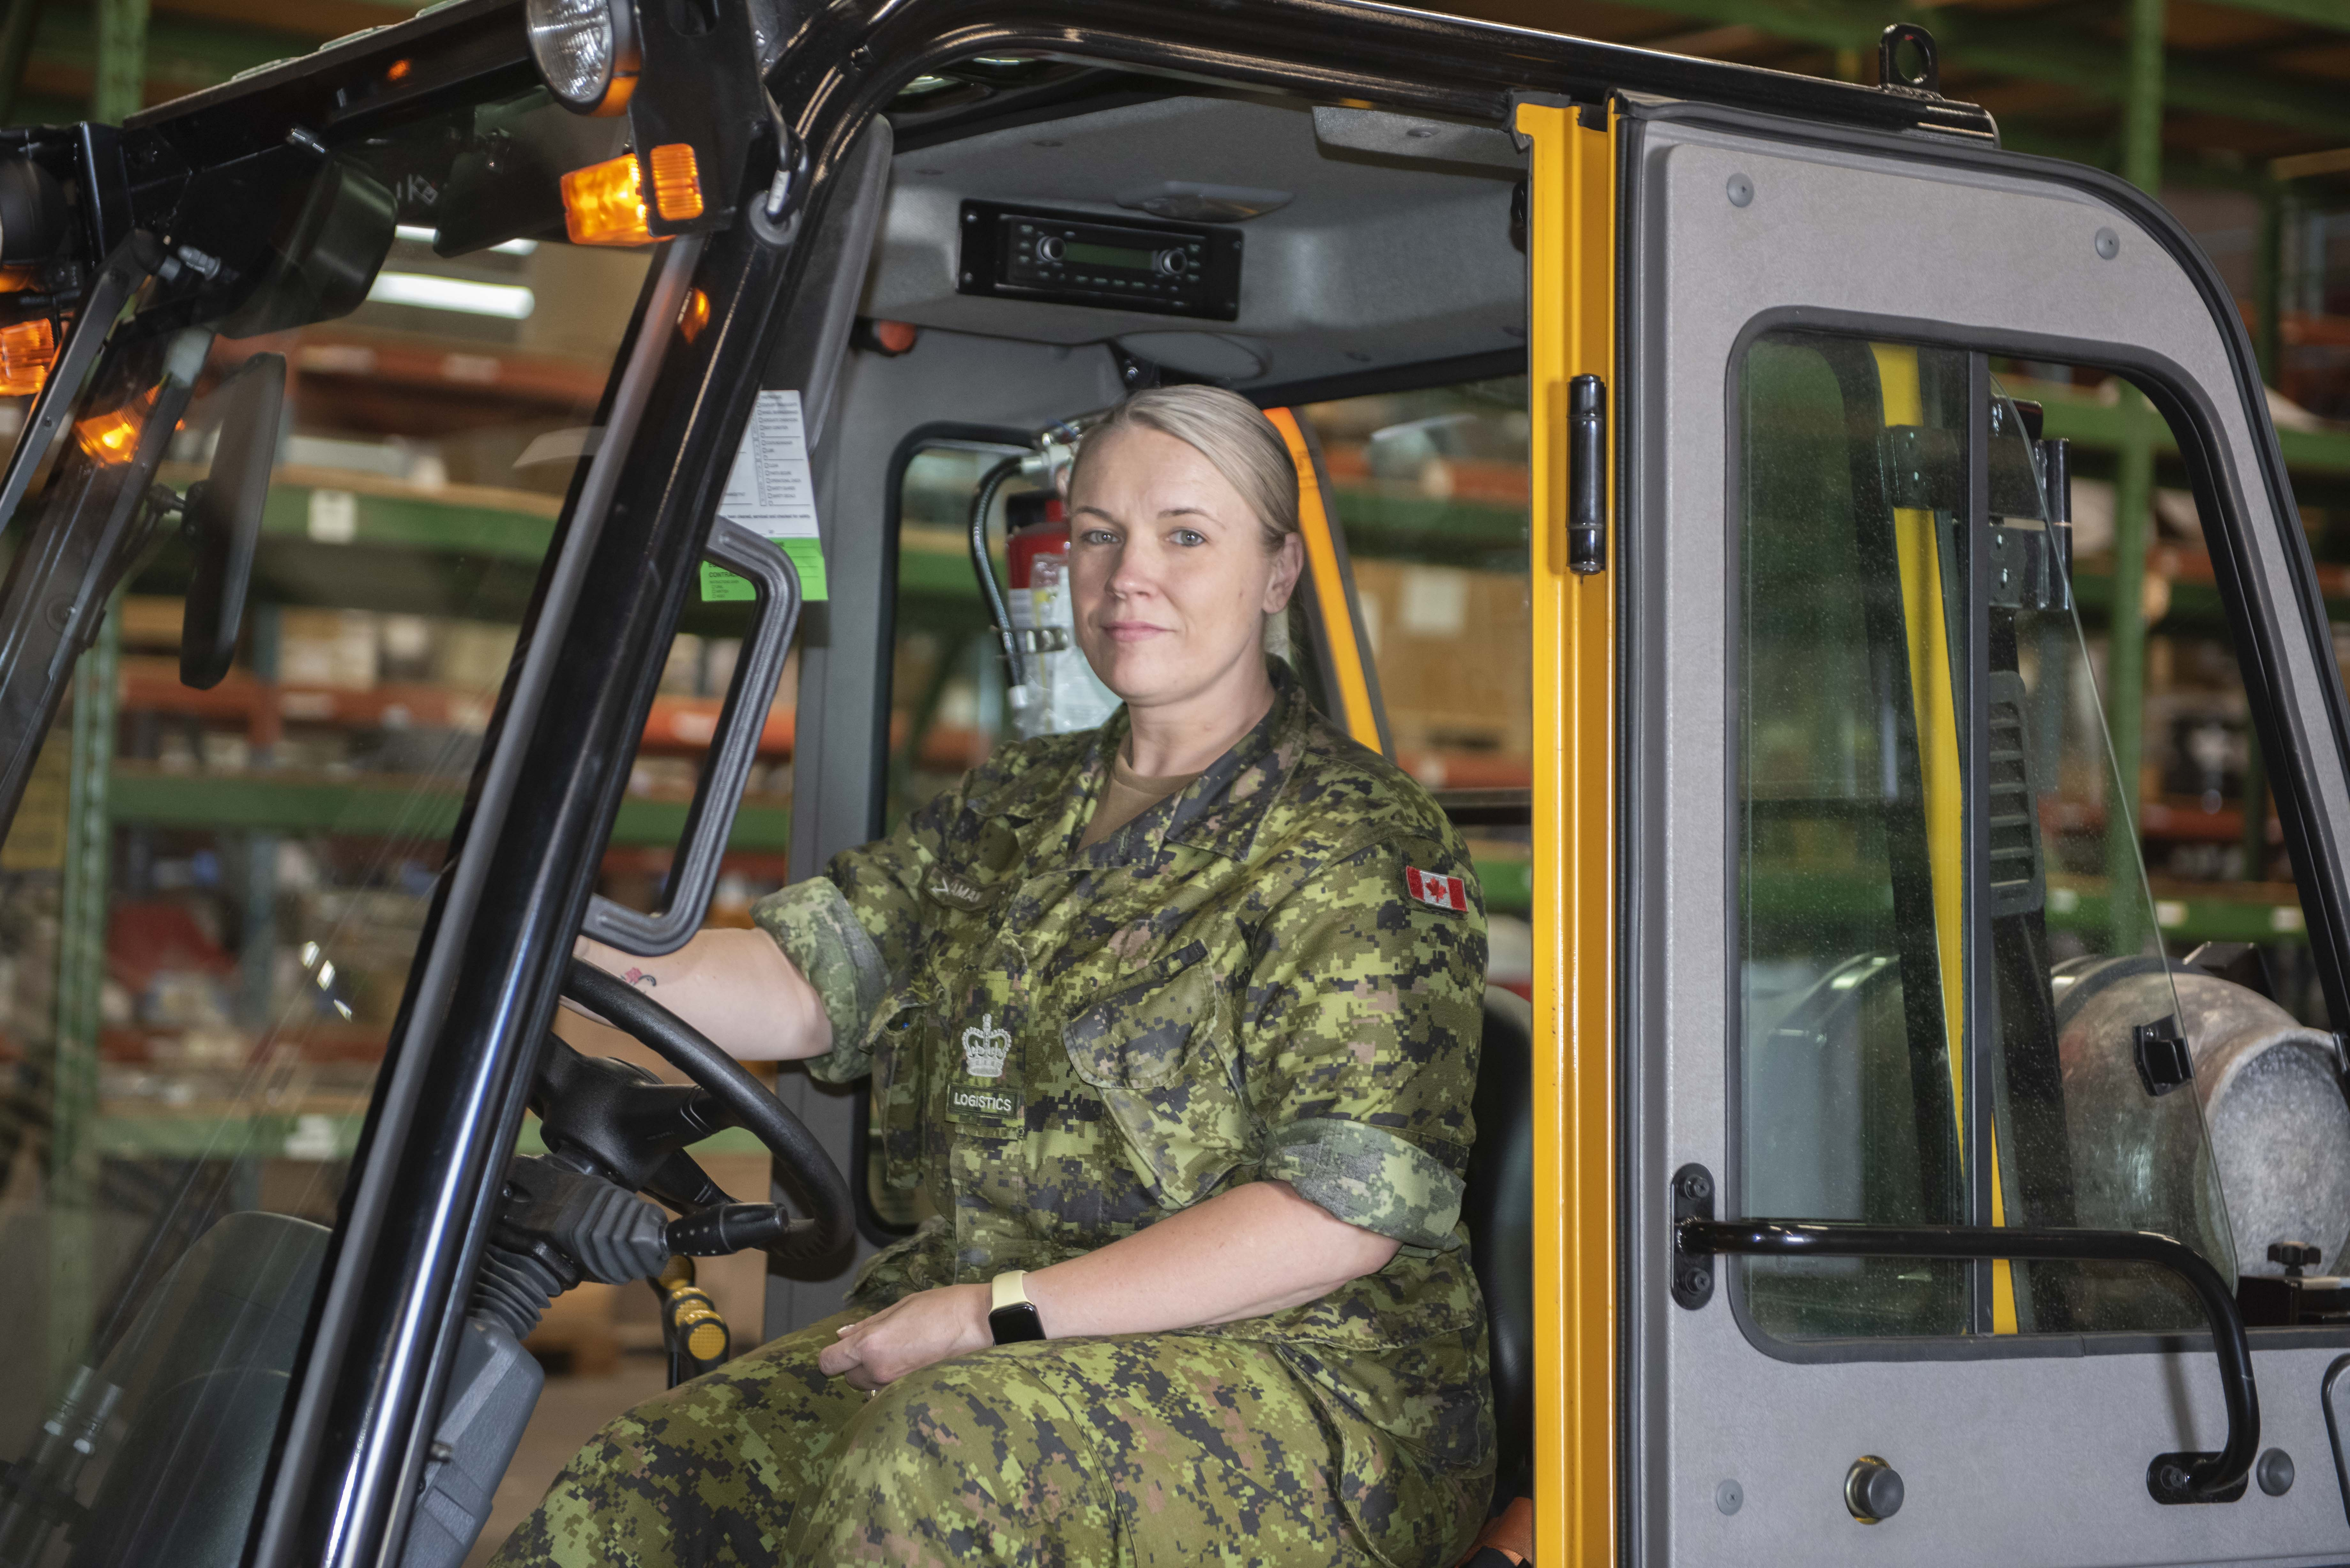 A woman wearing a camouflage uniform sits at the wheel of a vehicle.